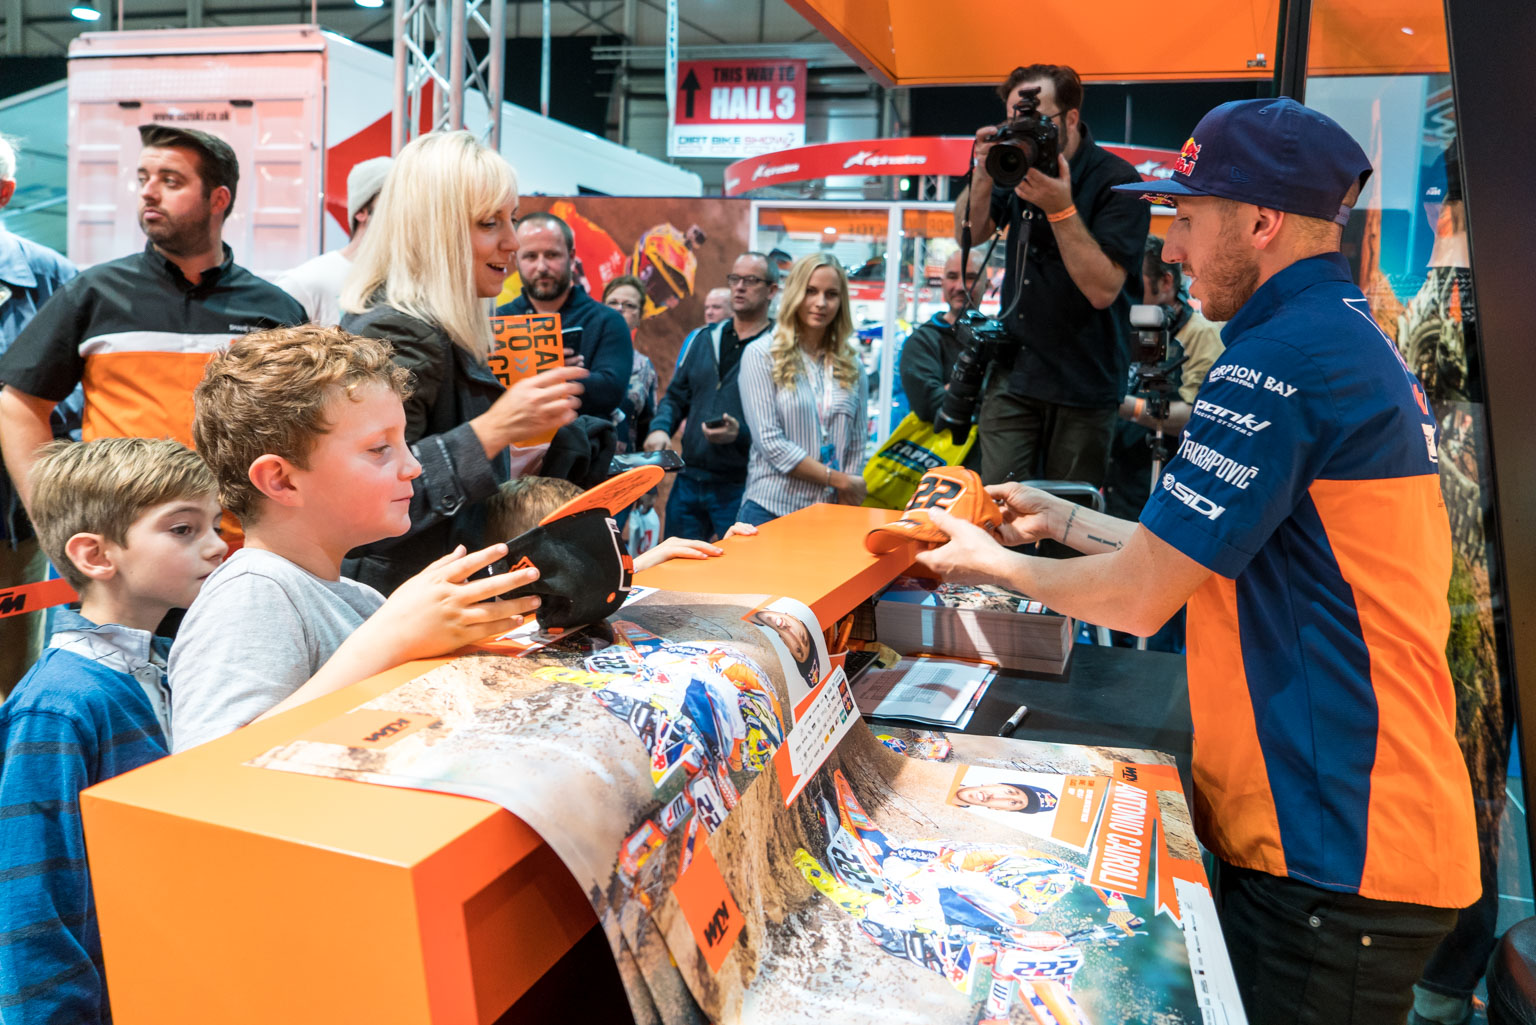 Cairoli signs for the fans at Stoneleigh